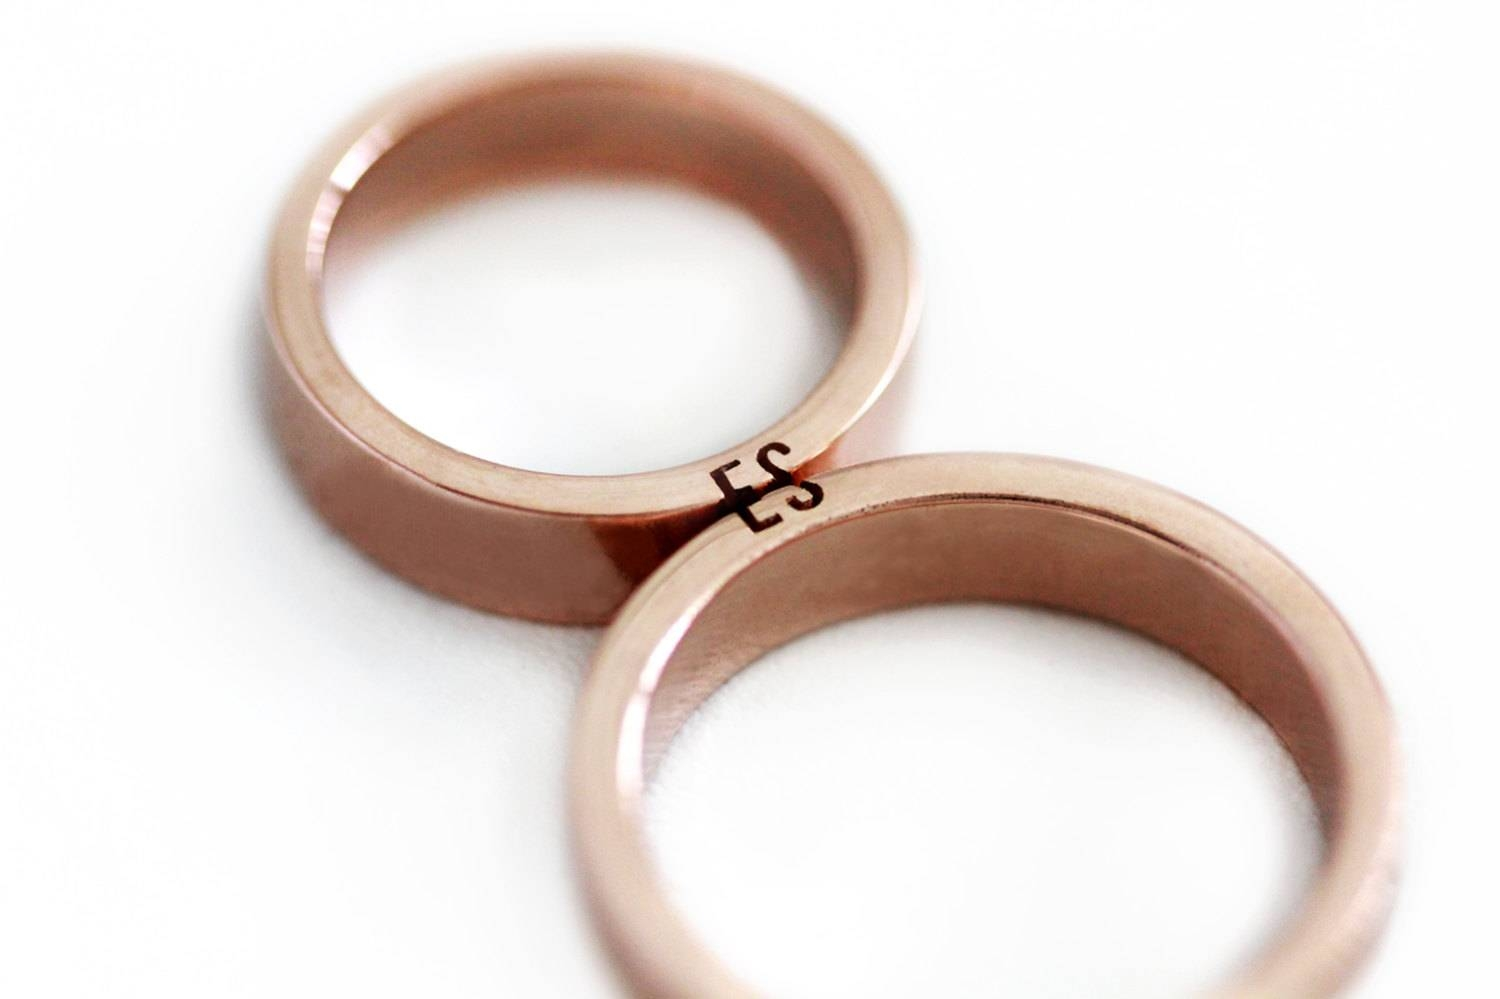 Unique Couple Ring Set Initials Ring Set Rose Gold Wedding Inside Couple Rose Gold Wedding Bands (View 15 of 15)